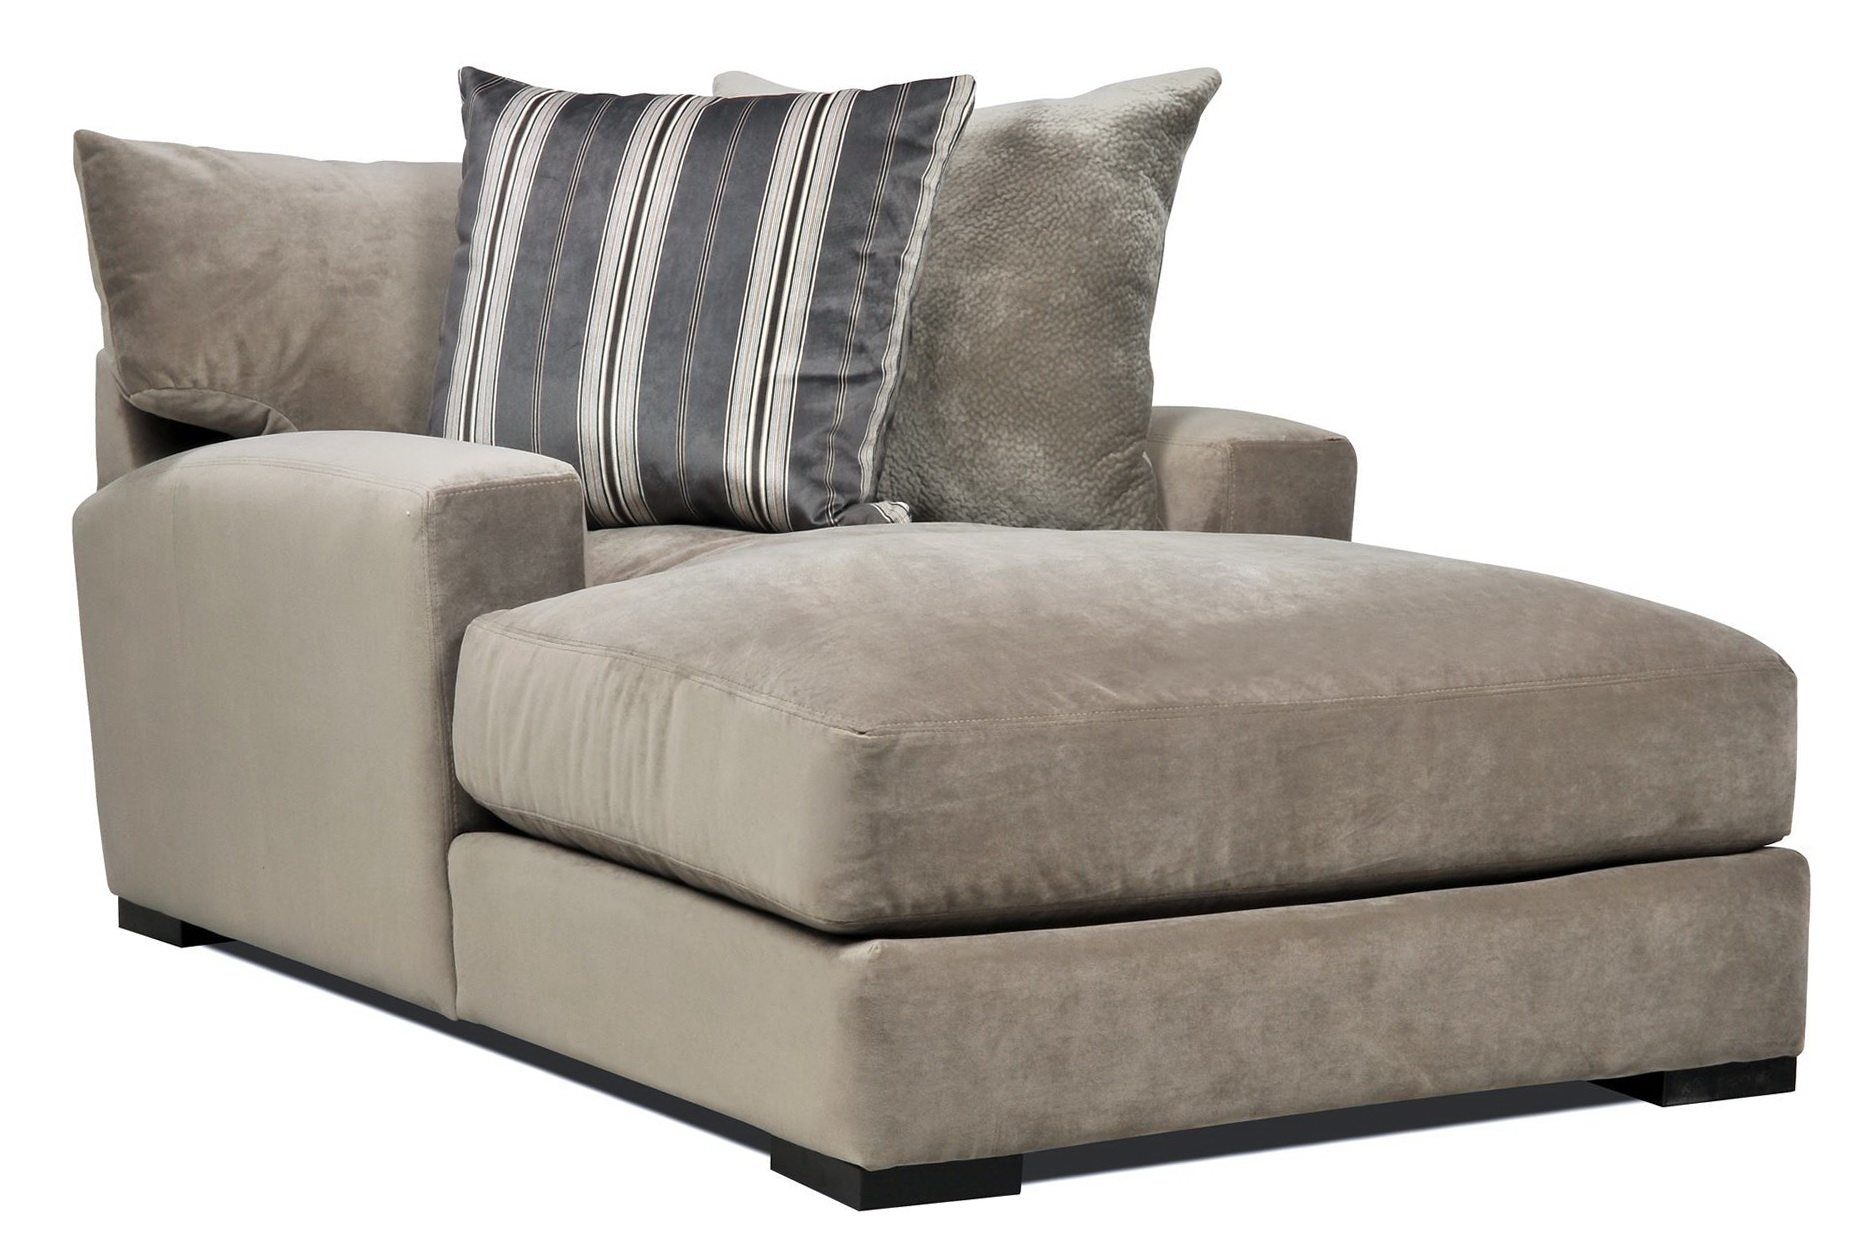 Newest Exotic Chaise Lounge Chairs Intended For Double Wide Chaise Lounge Indoor With 2 Cushions (View 11 of 15)